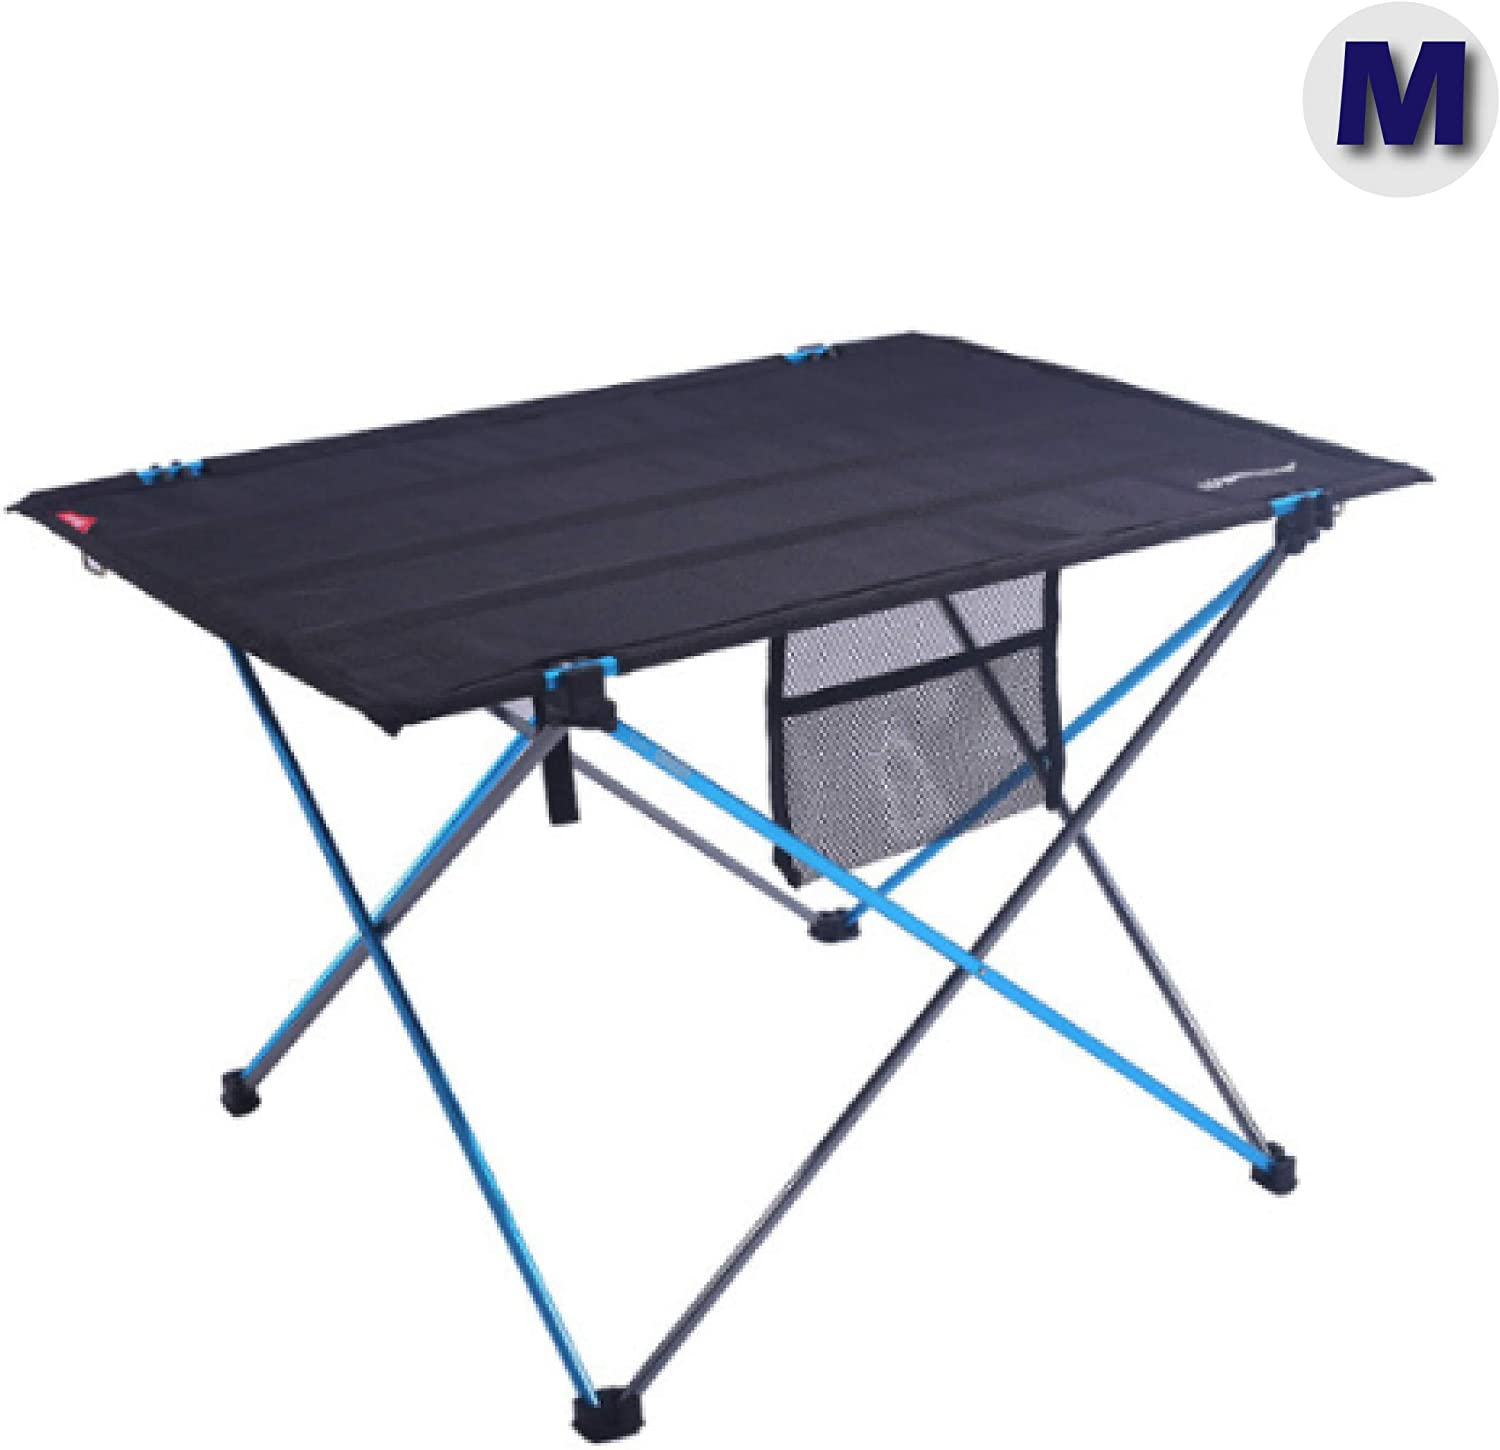 Azarxis Lightweight Portable Camping Folding Table Compact Roll Up Collapsible Tables with Carrying Bag for Outdoor Beach Camping Picnics Cookouts Backpacking Backyards BBQ